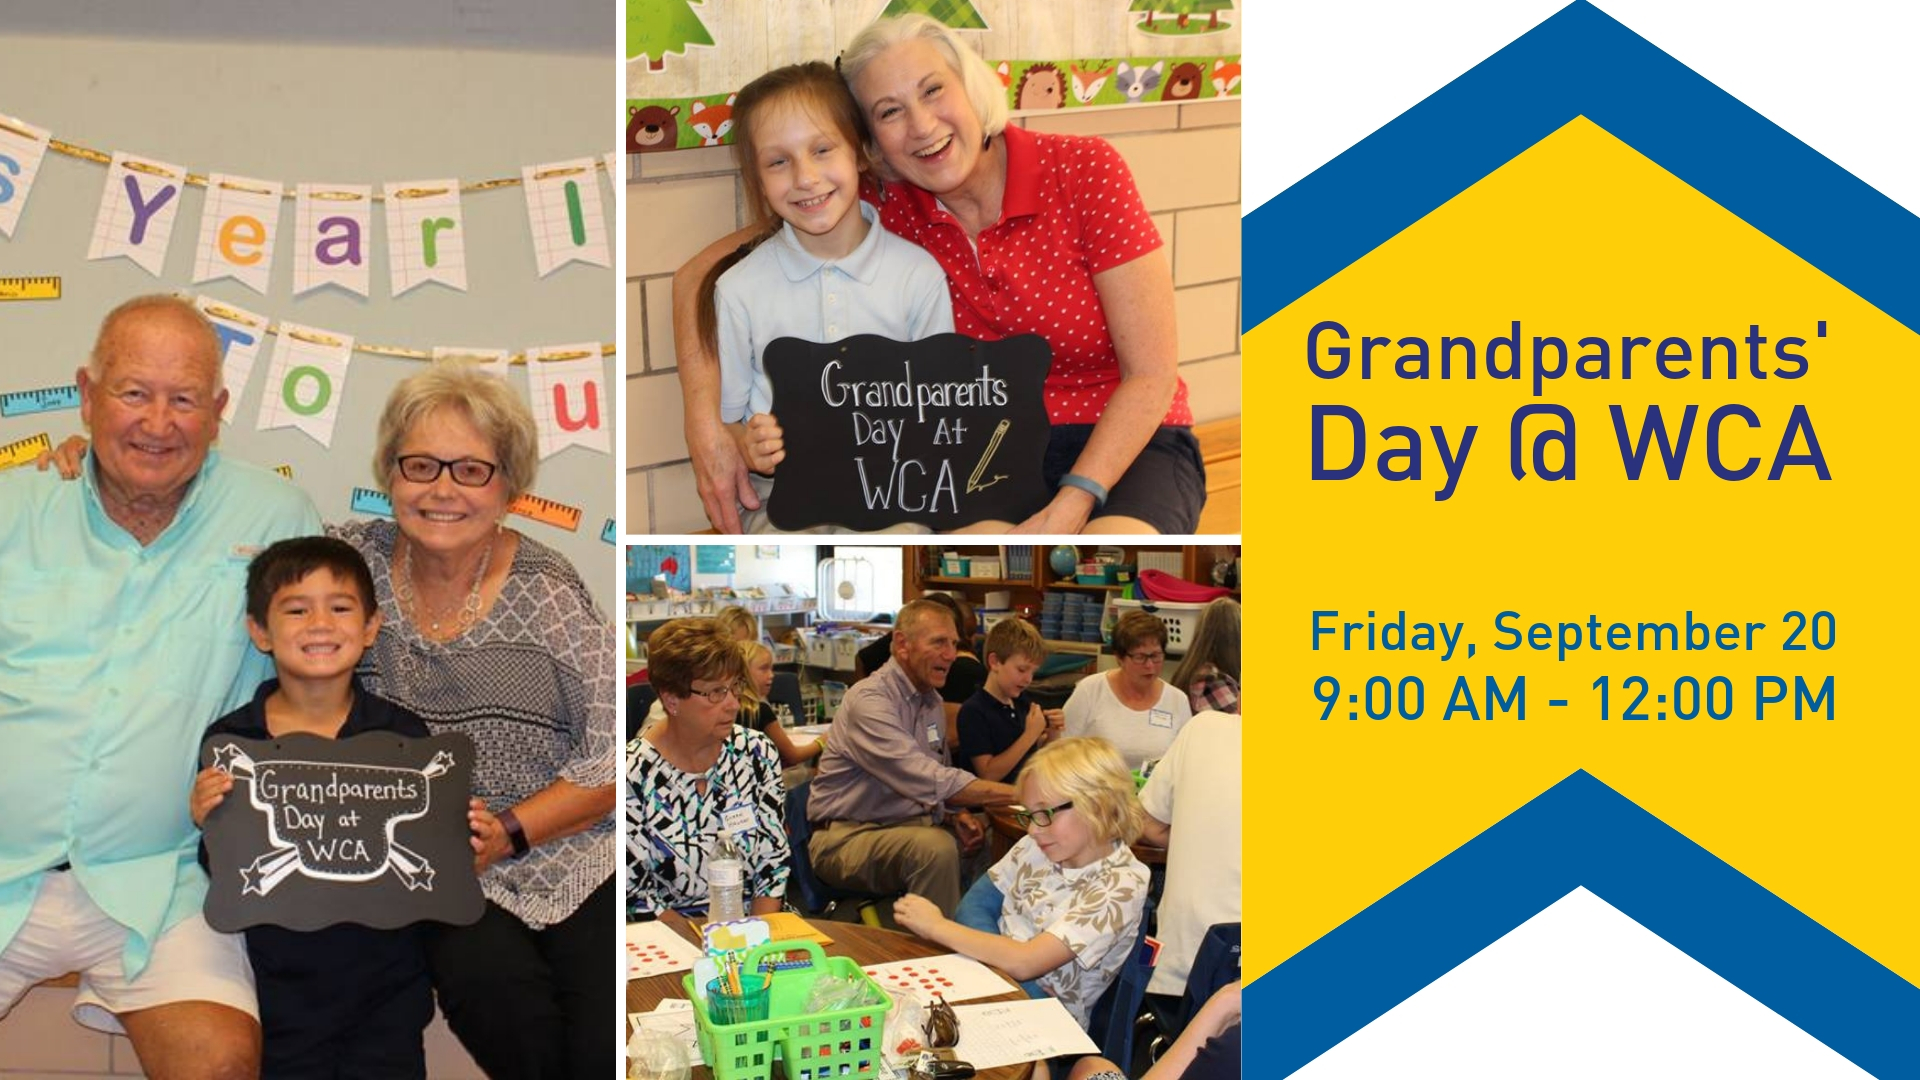 Grandparents' Day is Friday, September 20  |  9:00 AM - 12:00 PM